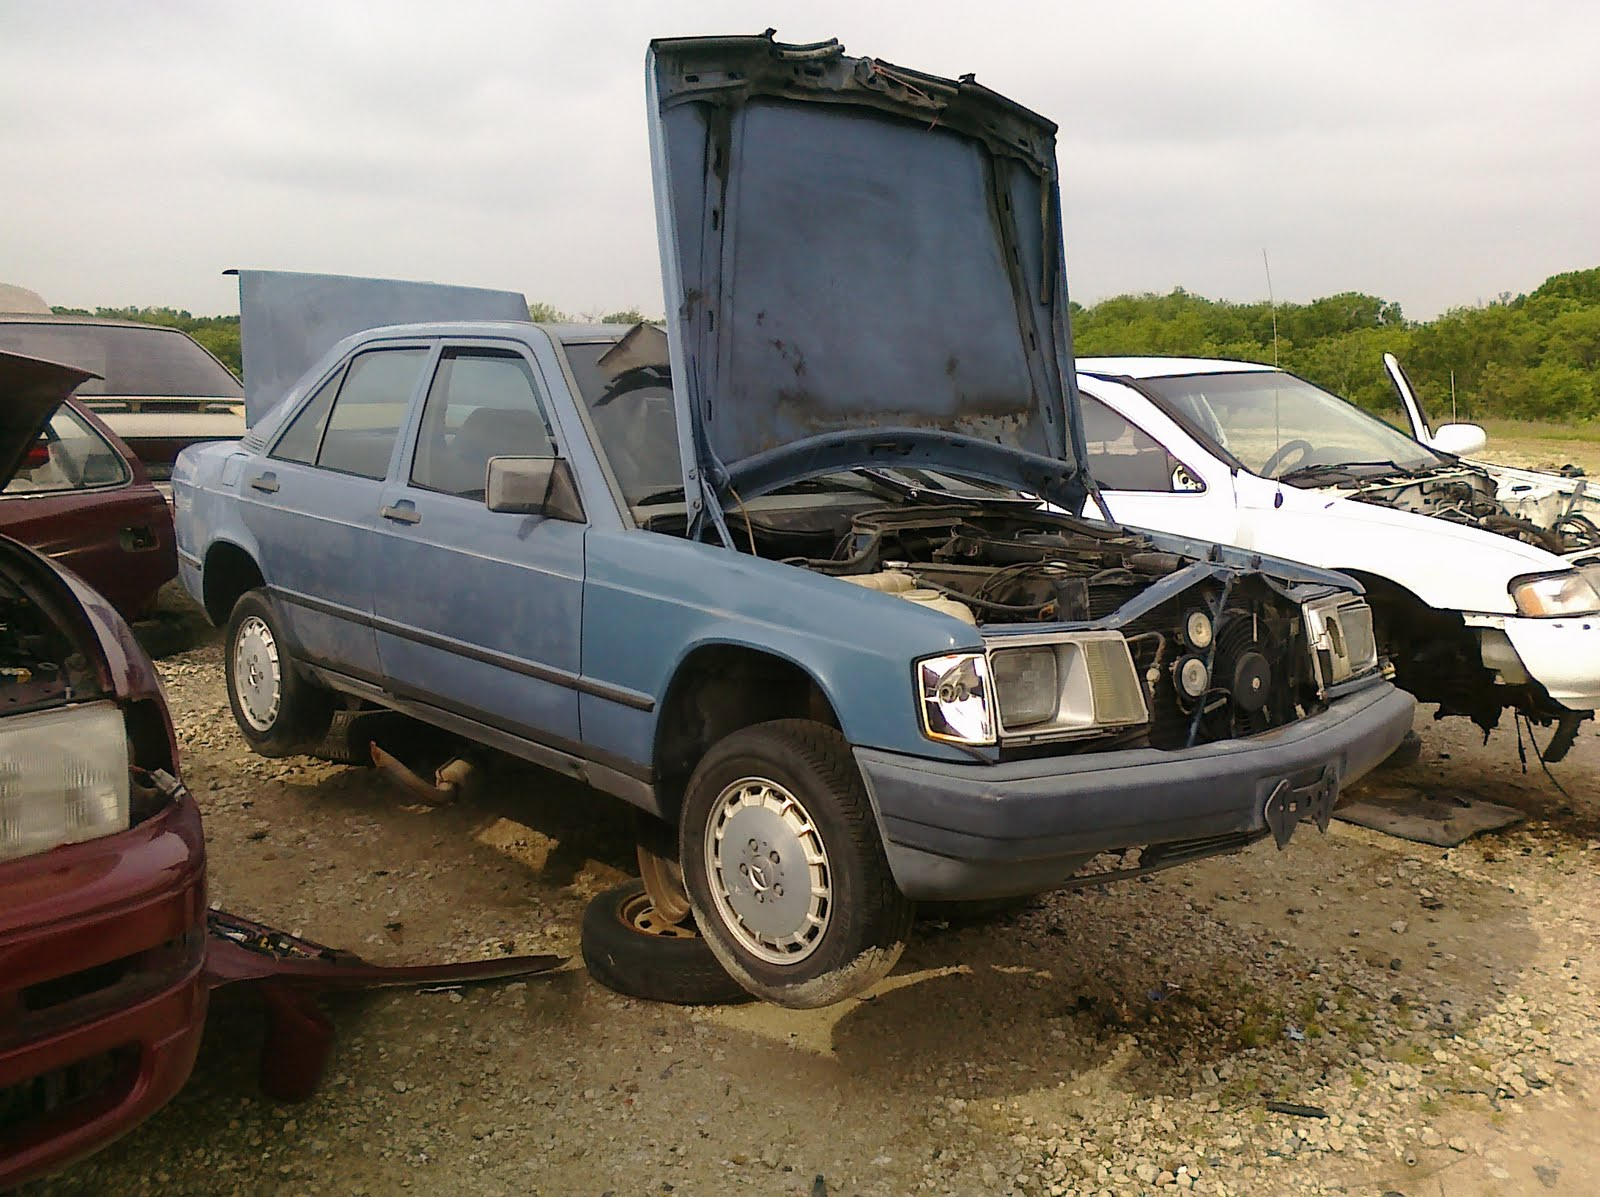 benz junkyard s ltd site class online motorhog salvage welcome mercedes to auction gle uk premier